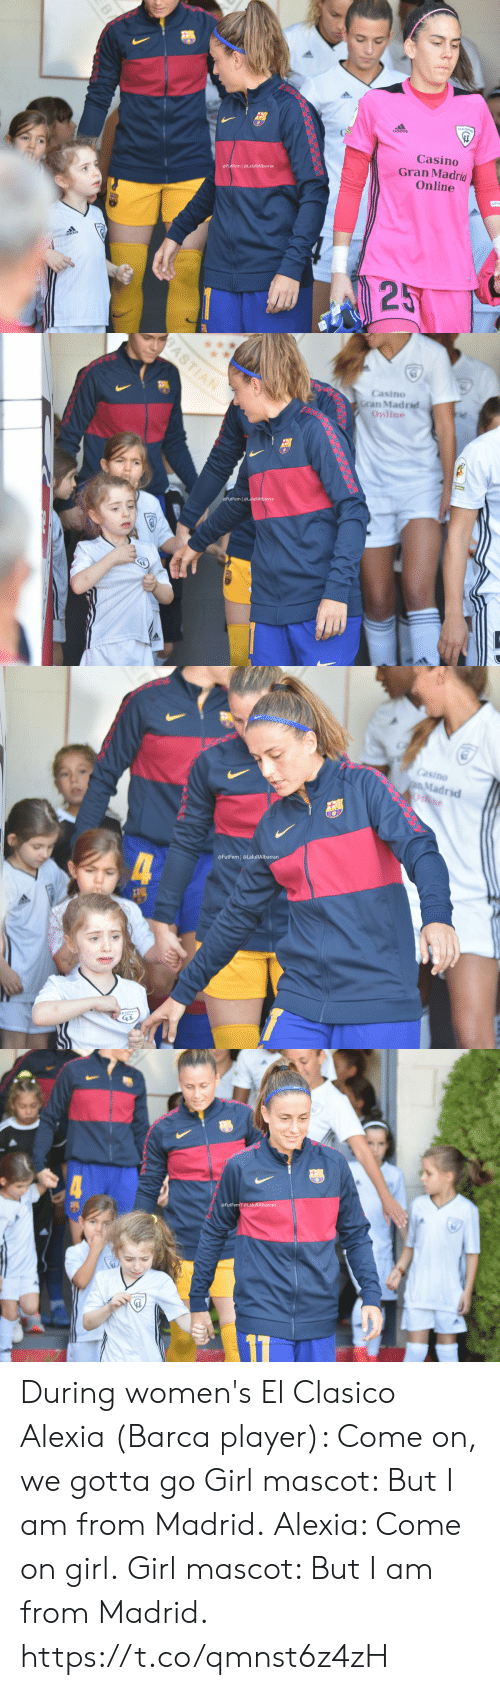 Womens: Casino  Gran Madrid  Online  @FutFem | @LaluRAlbarran  25  BA   BASTIAN  Casino  Gran Madrid  Online  FutFem @LaluRAlbarran   Casino  pMadrid  Onne  @FutFem @LaluRAlbarran  4  KADRIO   @FutFem@LaluRAlbarran During women's El Clasico  Alexia (Barca player): Come on, we gotta go Girl mascot: But I am from Madrid. Alexia: Come on girl. Girl mascot: But I am from Madrid.  https://t.co/qmnst6z4zH